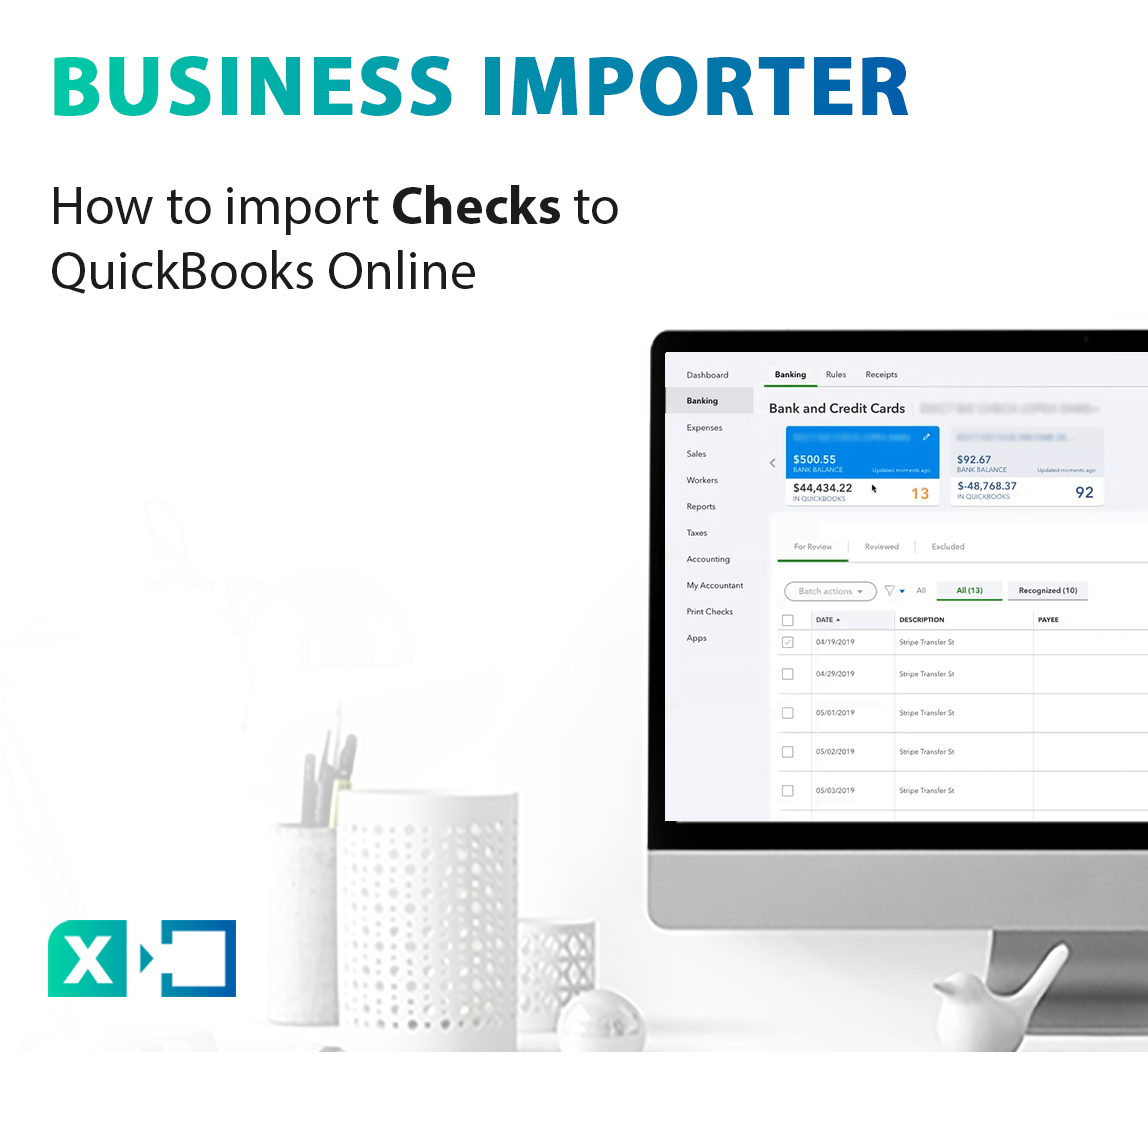 import Checks to QuickBooks Online